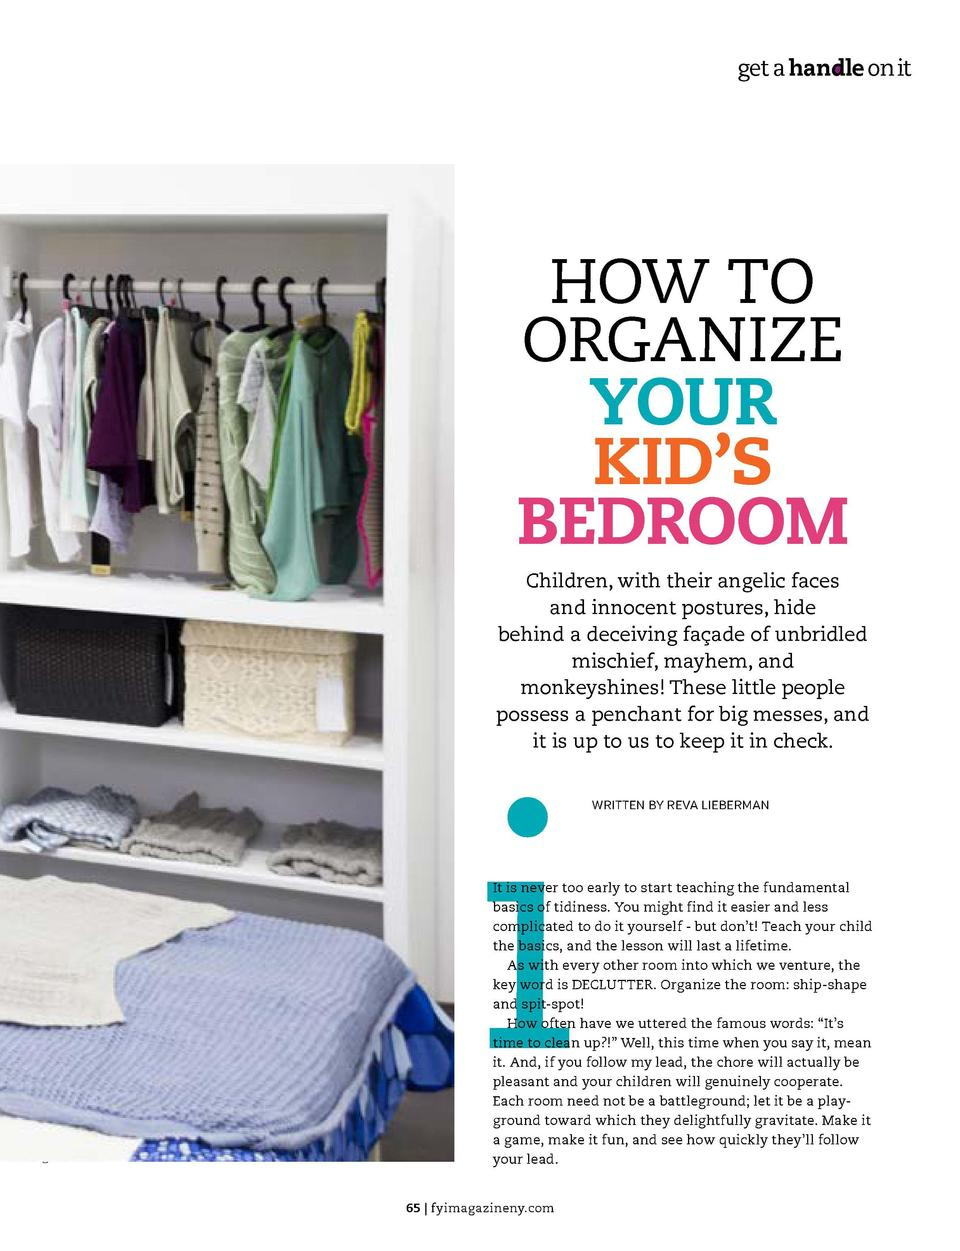 get a handle on it  get a handle on it  HOW TO ORGANIZE  Adult furniture and organizing systems do not translate well to c...